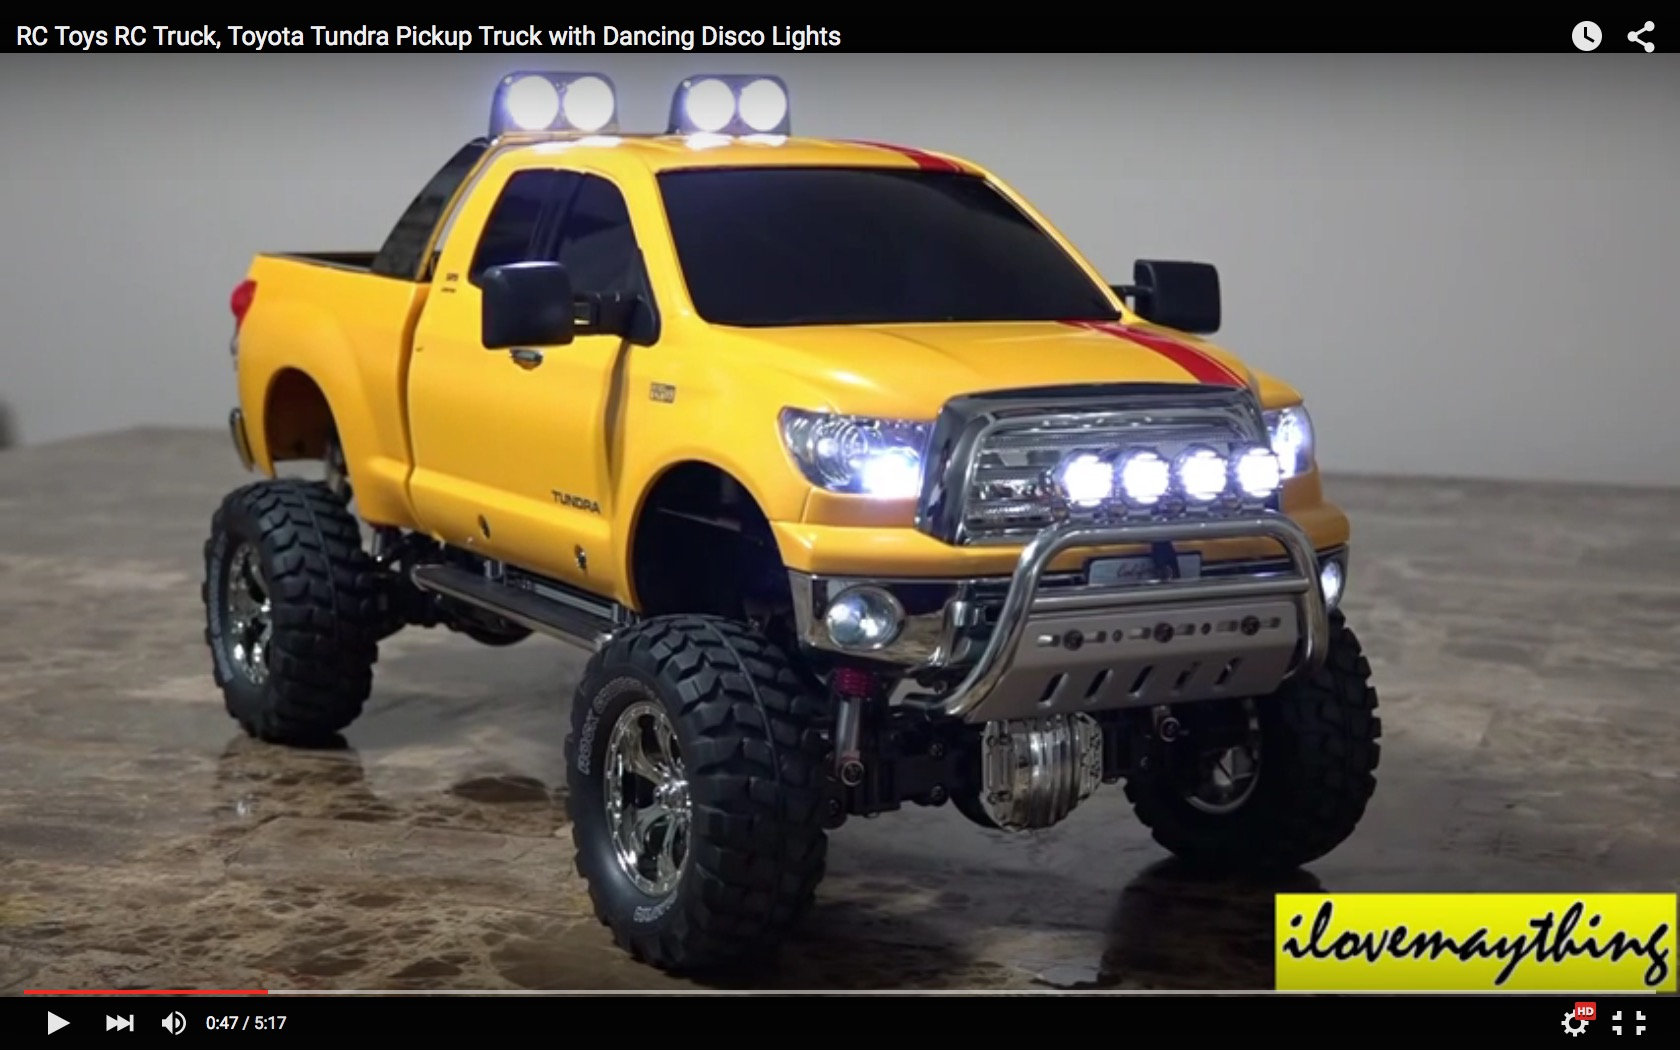 rc toyota tundra pickup truck has disco lights nostalgia kicks in autoevolution. Black Bedroom Furniture Sets. Home Design Ideas